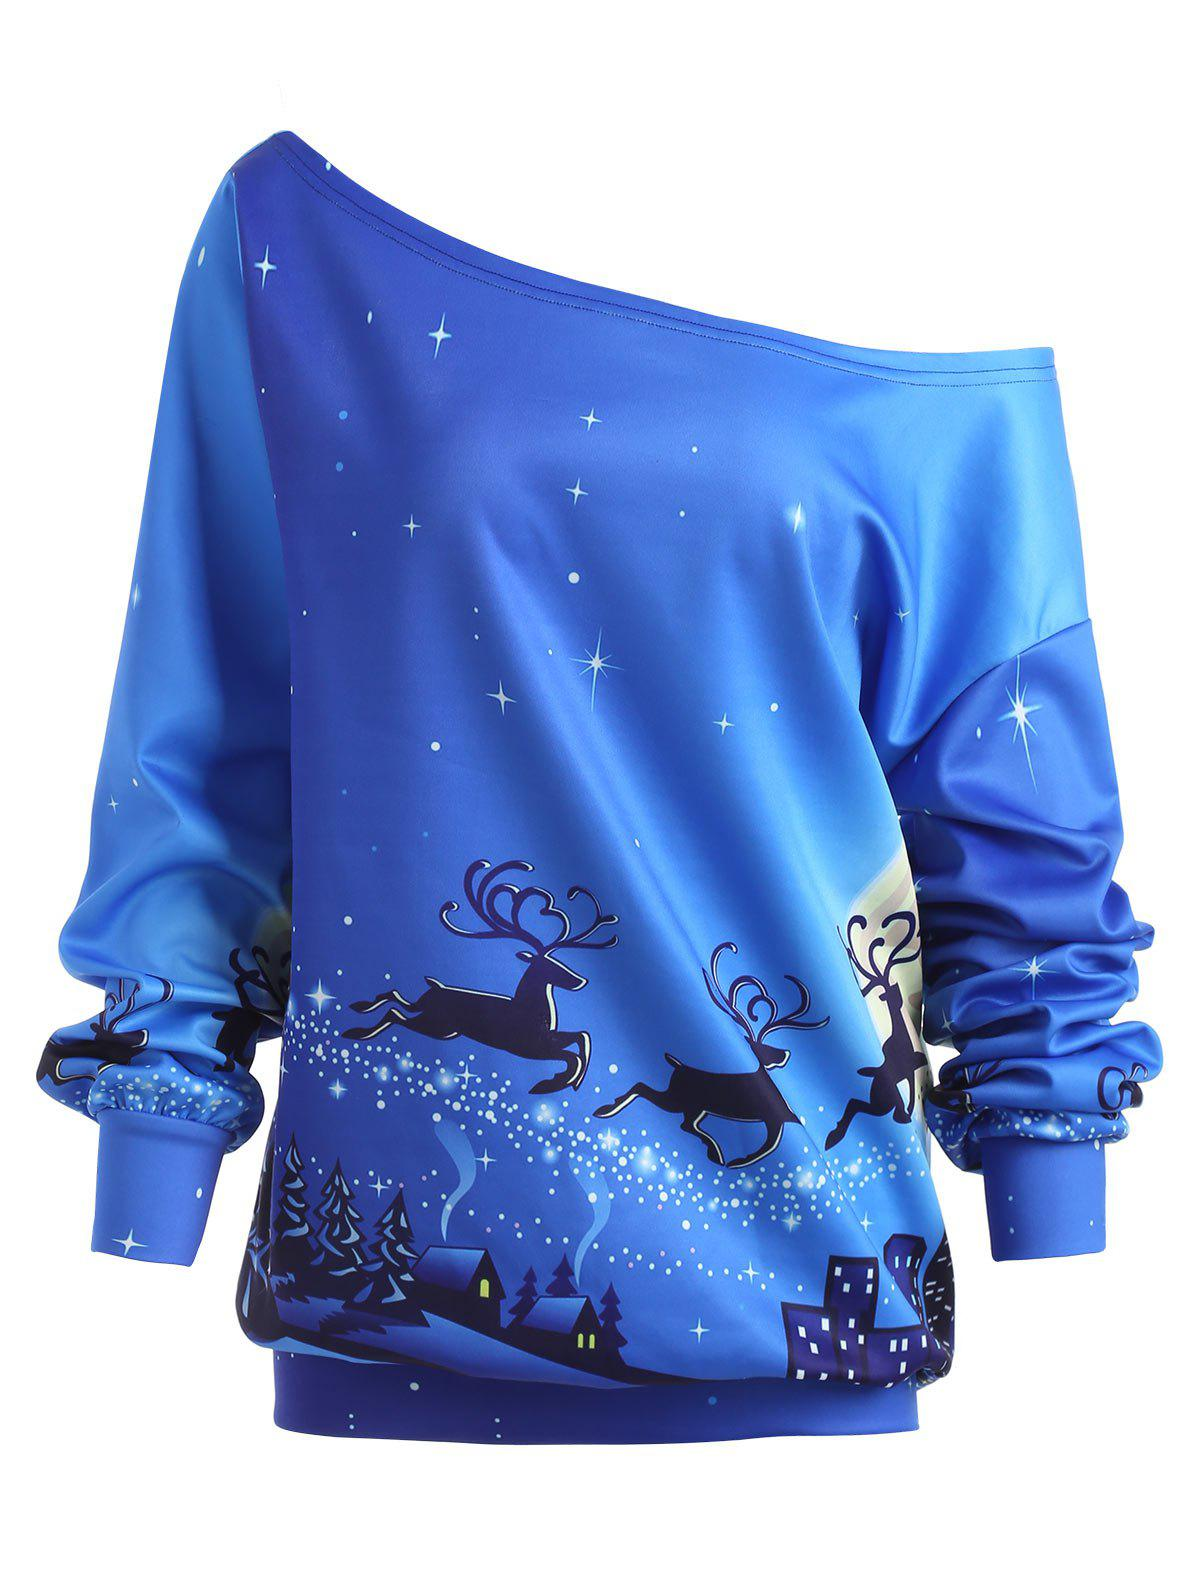 Plus Size Christmas Day ELK Skew Neck SweatshirtWOMEN<br><br>Size: 5XL; Color: BLUE; Material: Polyester; Shirt Length: Regular; Sleeve Length: Full; Style: Fashion; Pattern Style: Animal,Character; Season: Fall,Winter; Weight: 0.3700kg; Package Contents: 1 x Sweatshirt;